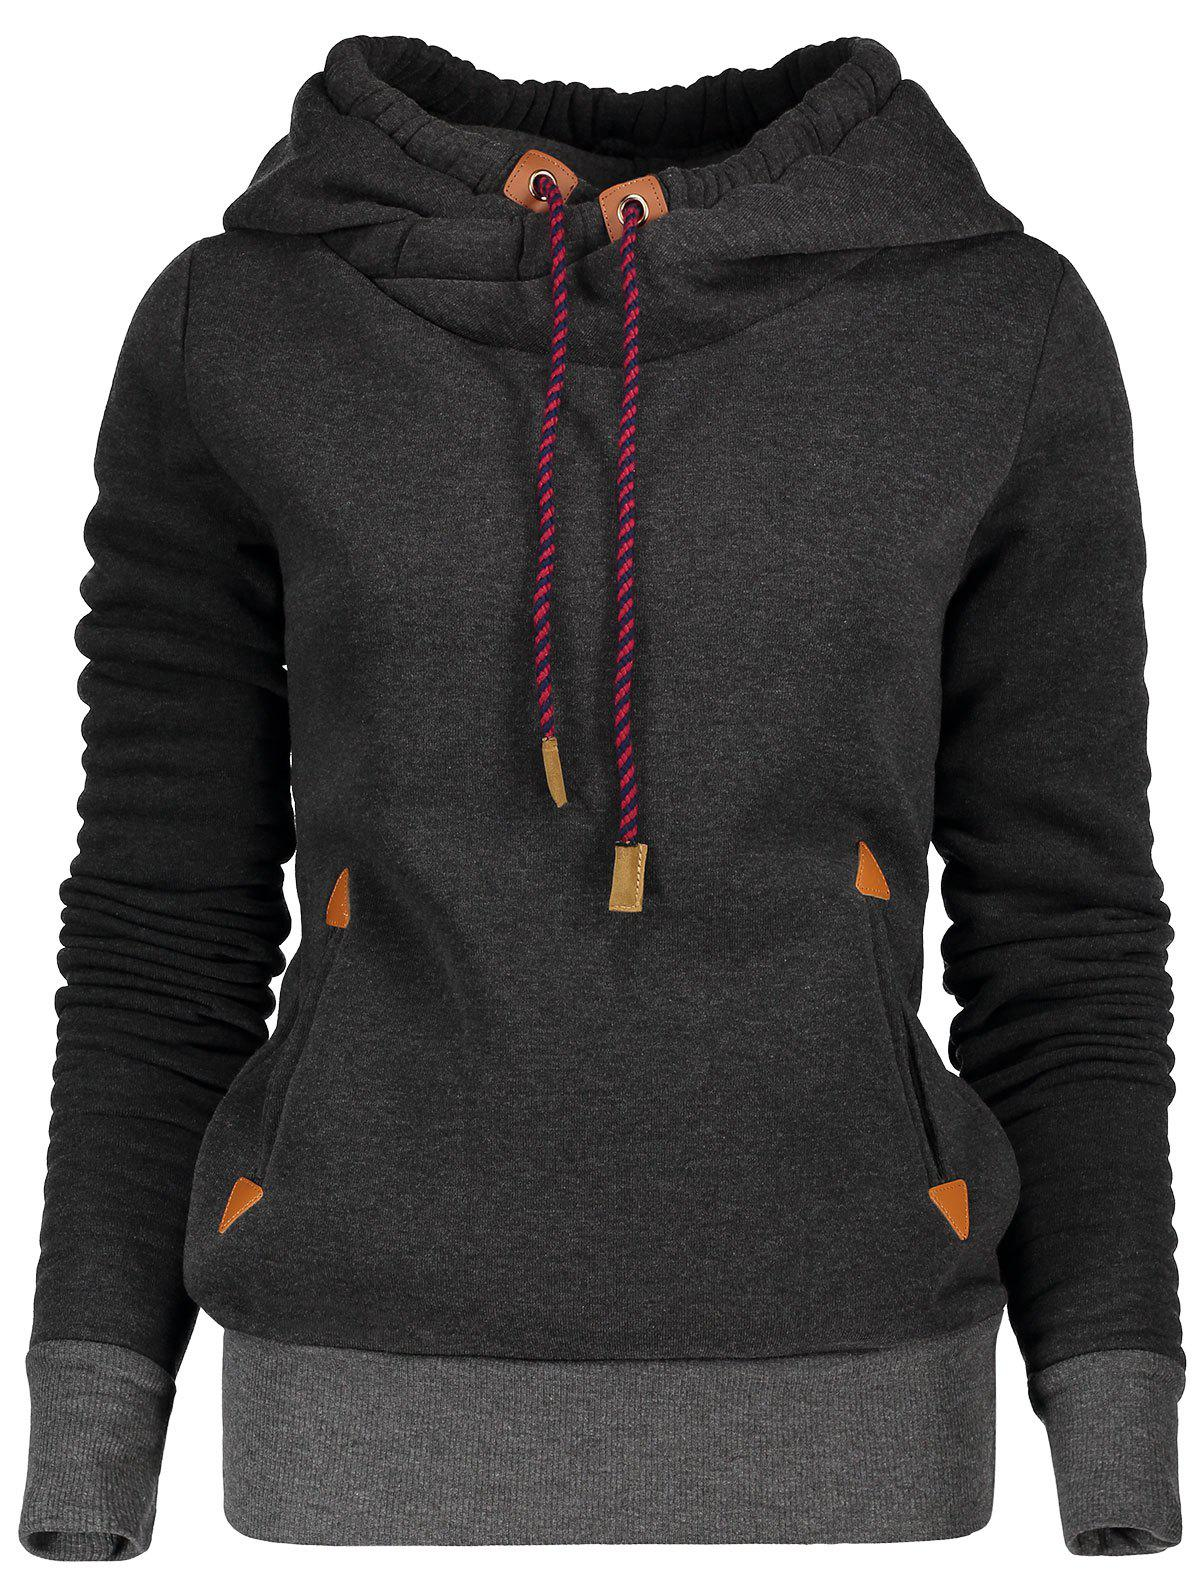 Stylish Hooded Long Sleeve Spliced Womens Pullover HoodieWOMEN<br><br>Size: L; Color: BLACK; Material: Polyester; Shirt Length: Regular; Sleeve Length: Full; Style: Fashion; Pattern Style: Patchwork; Weight: 0.47KG; Package Contents: 1 x Hoodie;